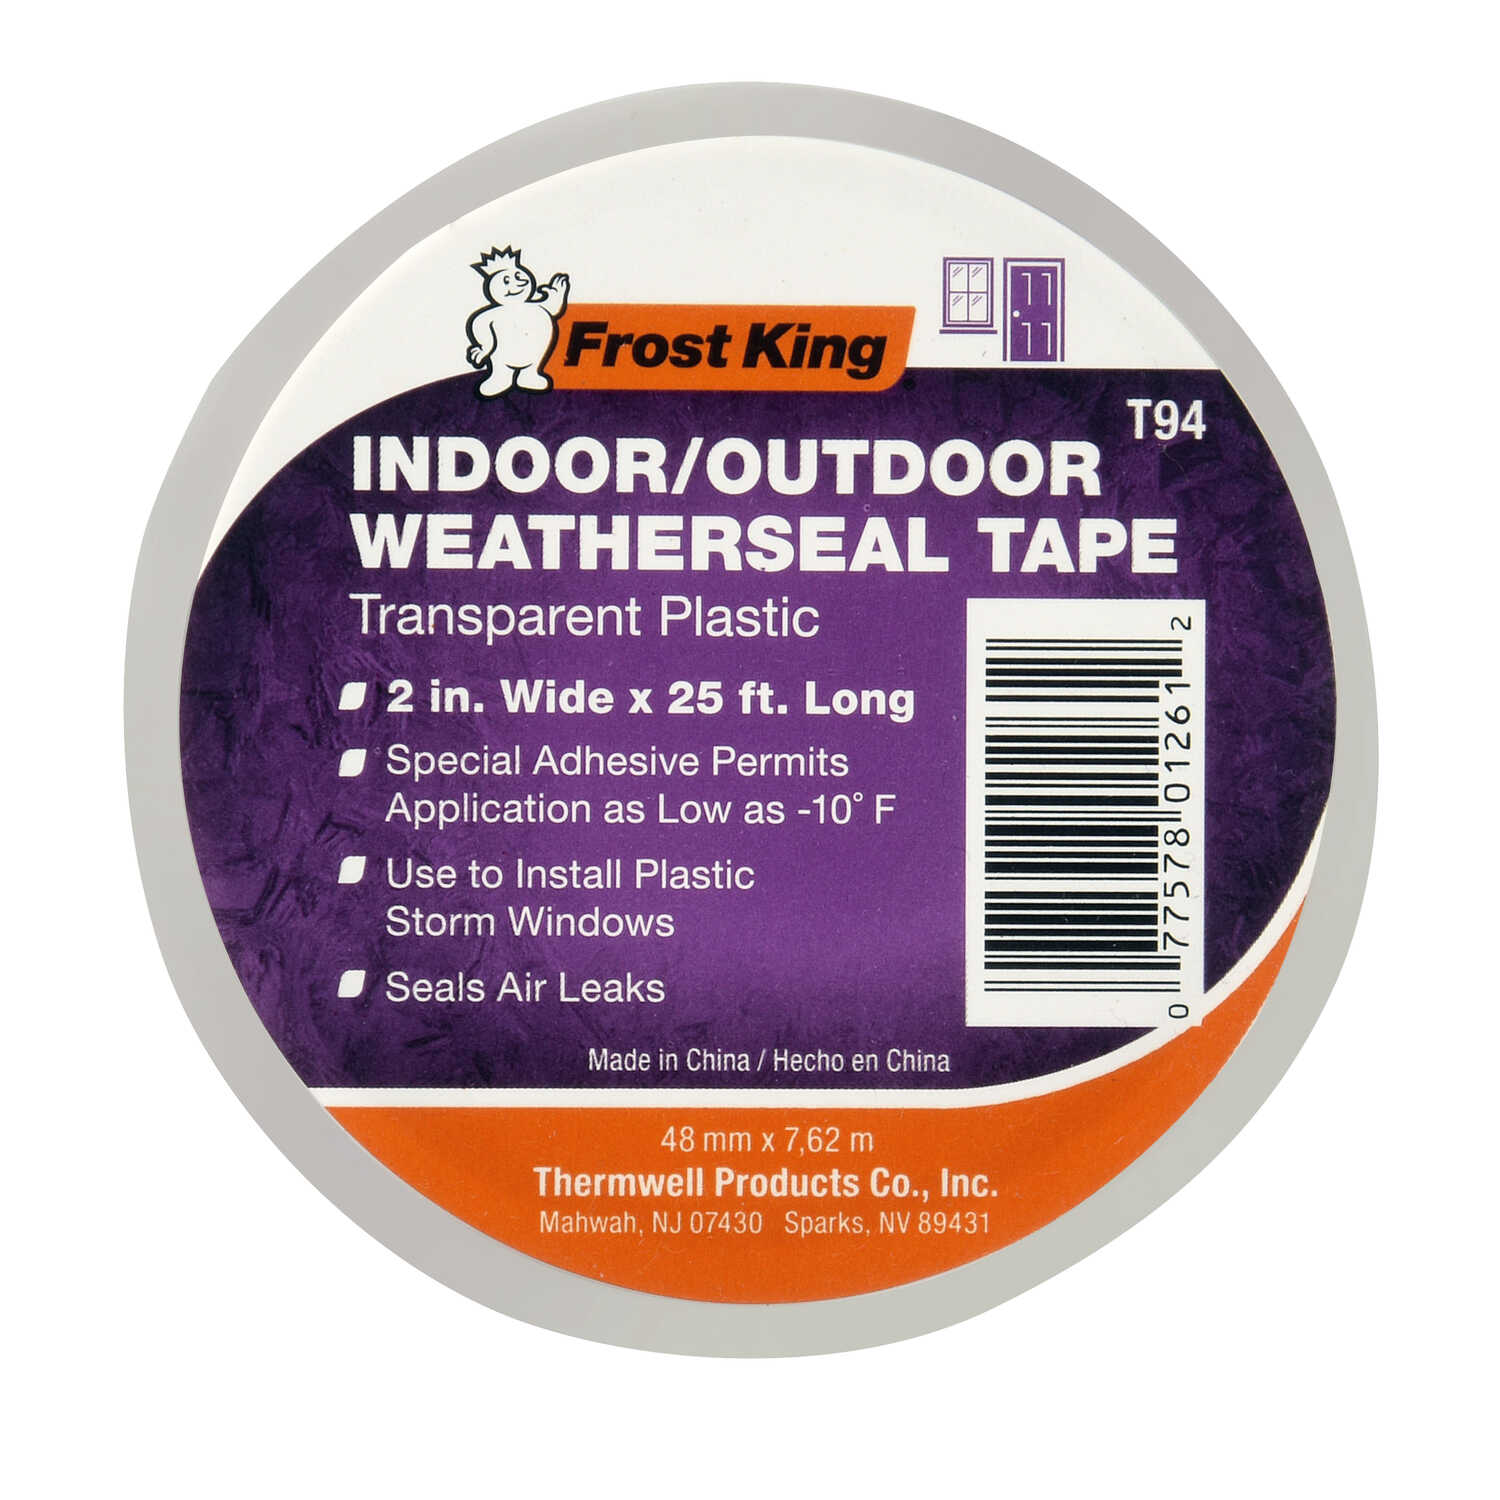 Frost King Clear Plastic Weather Stripping Tape For Windows